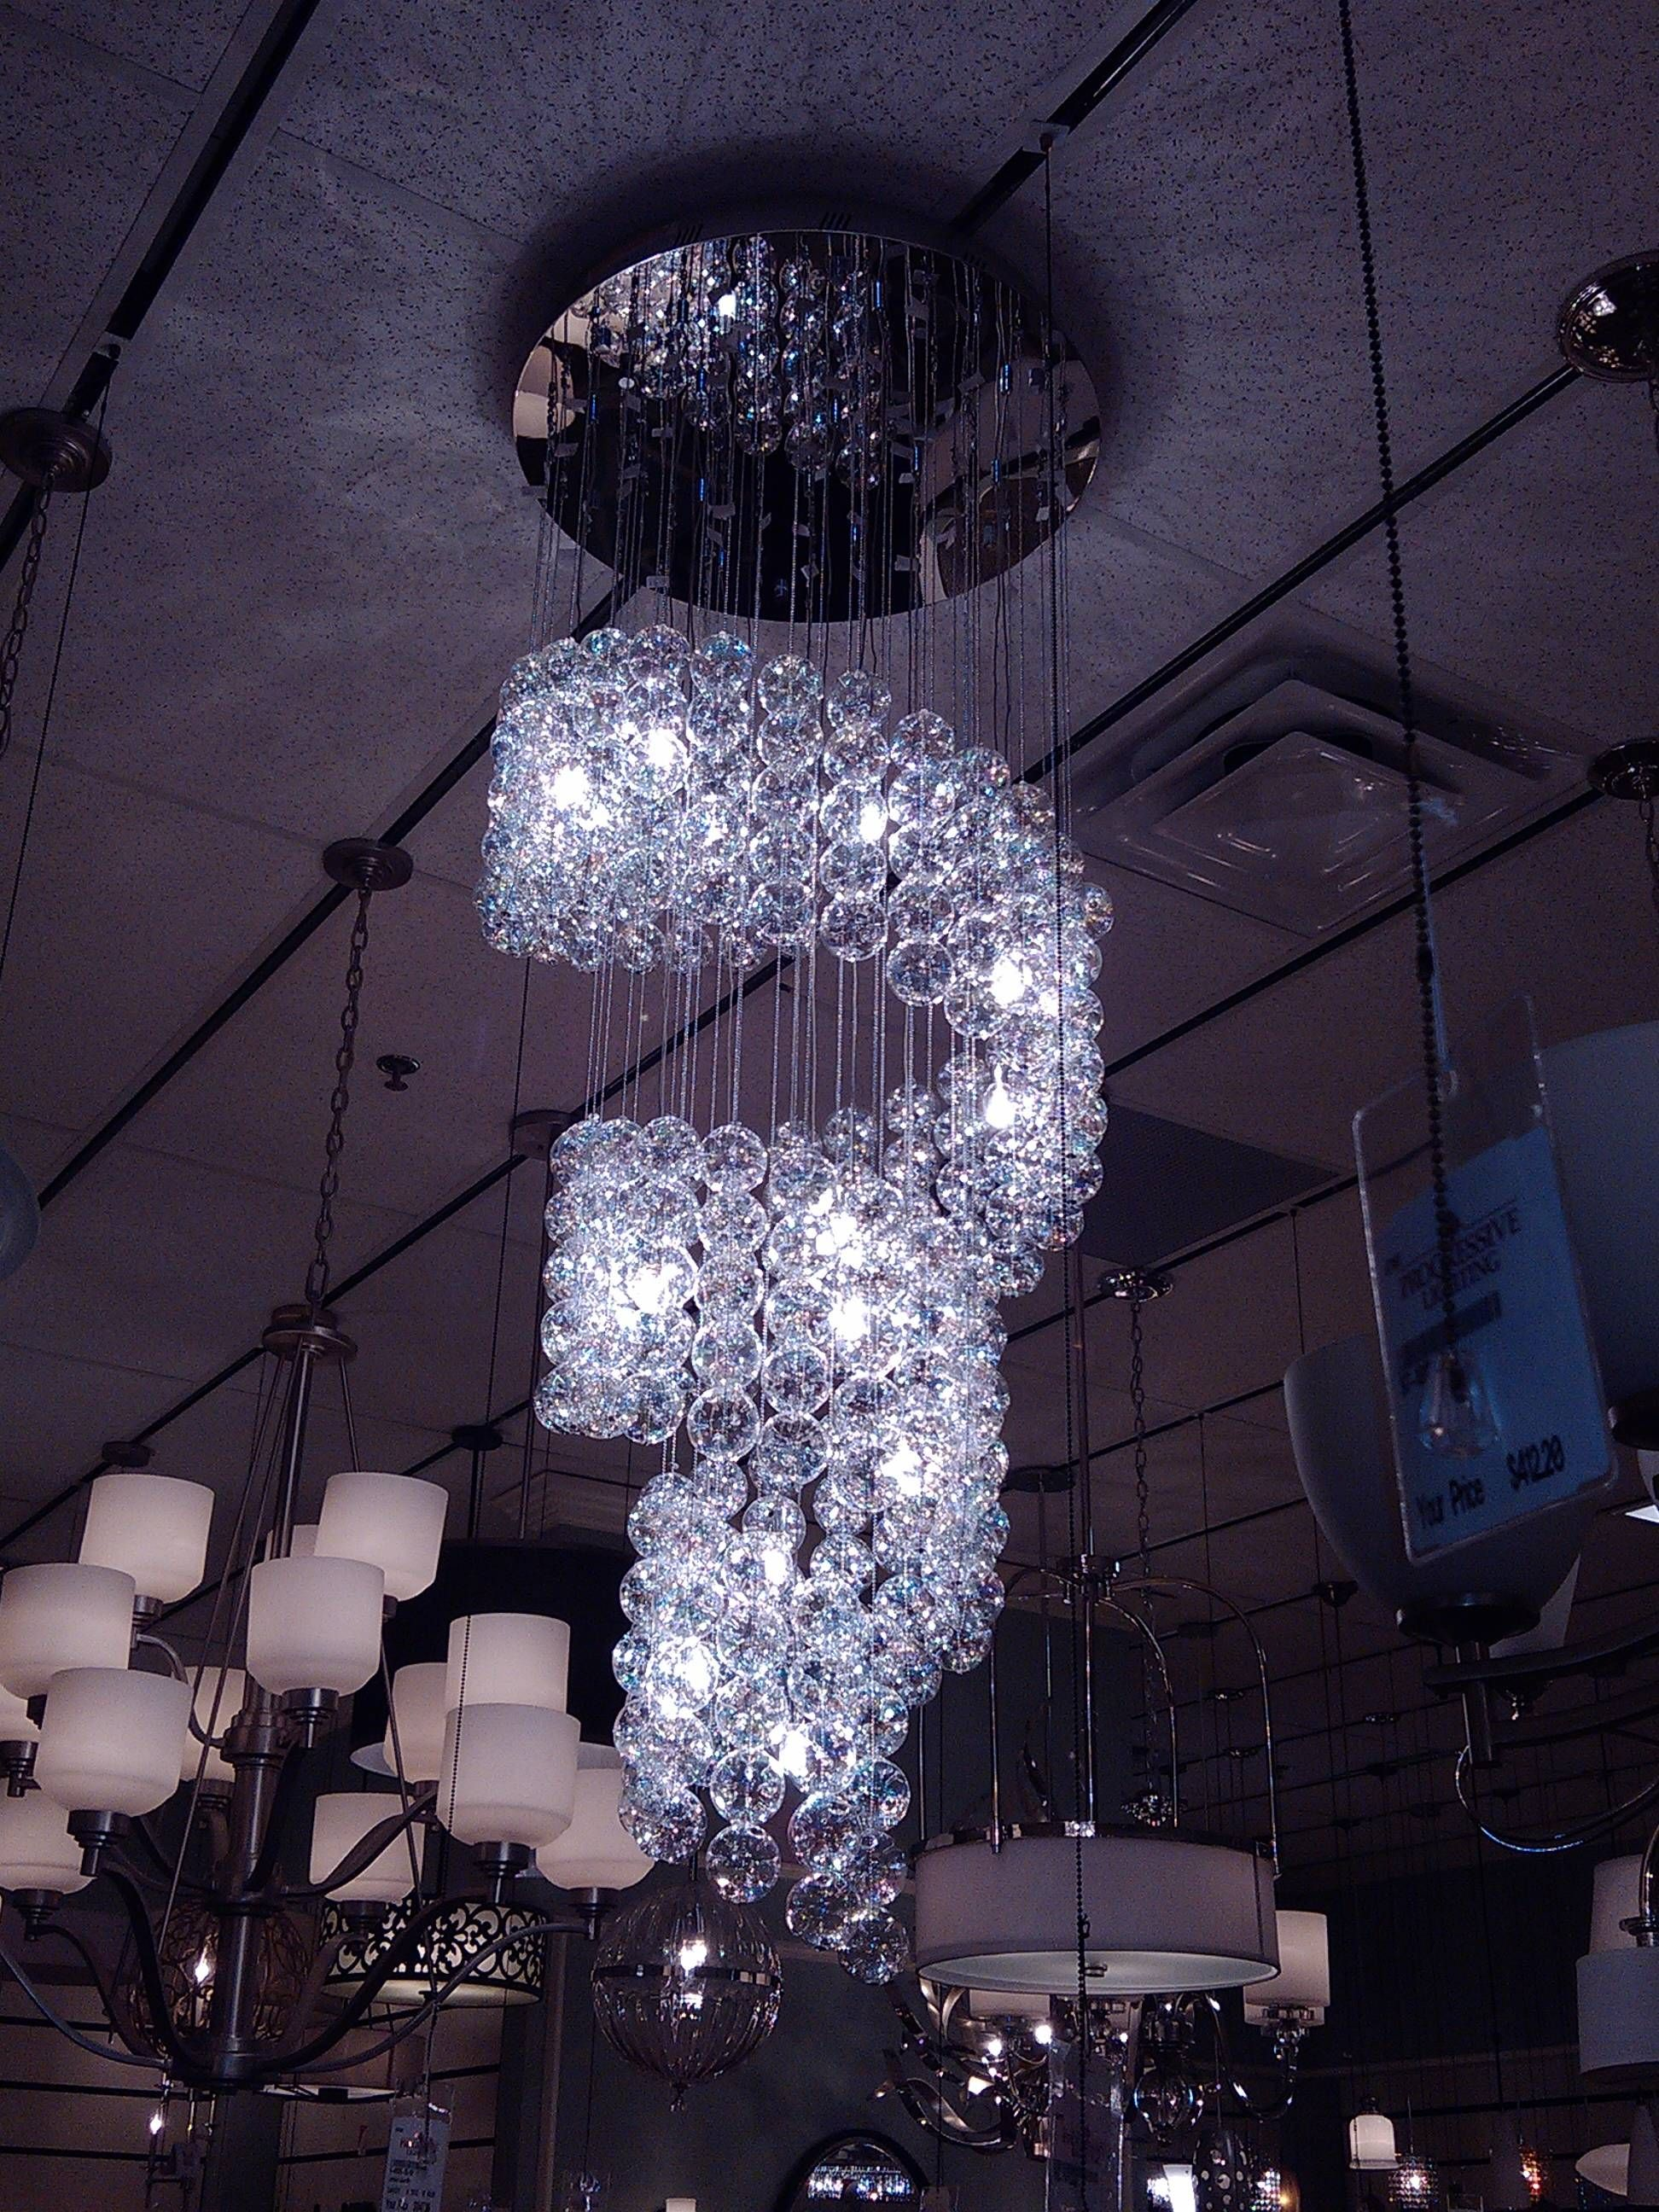 Trend Lighting  ... Uploaded with Pinterest Android app. Get it here: http://bit.ly/w38r4m